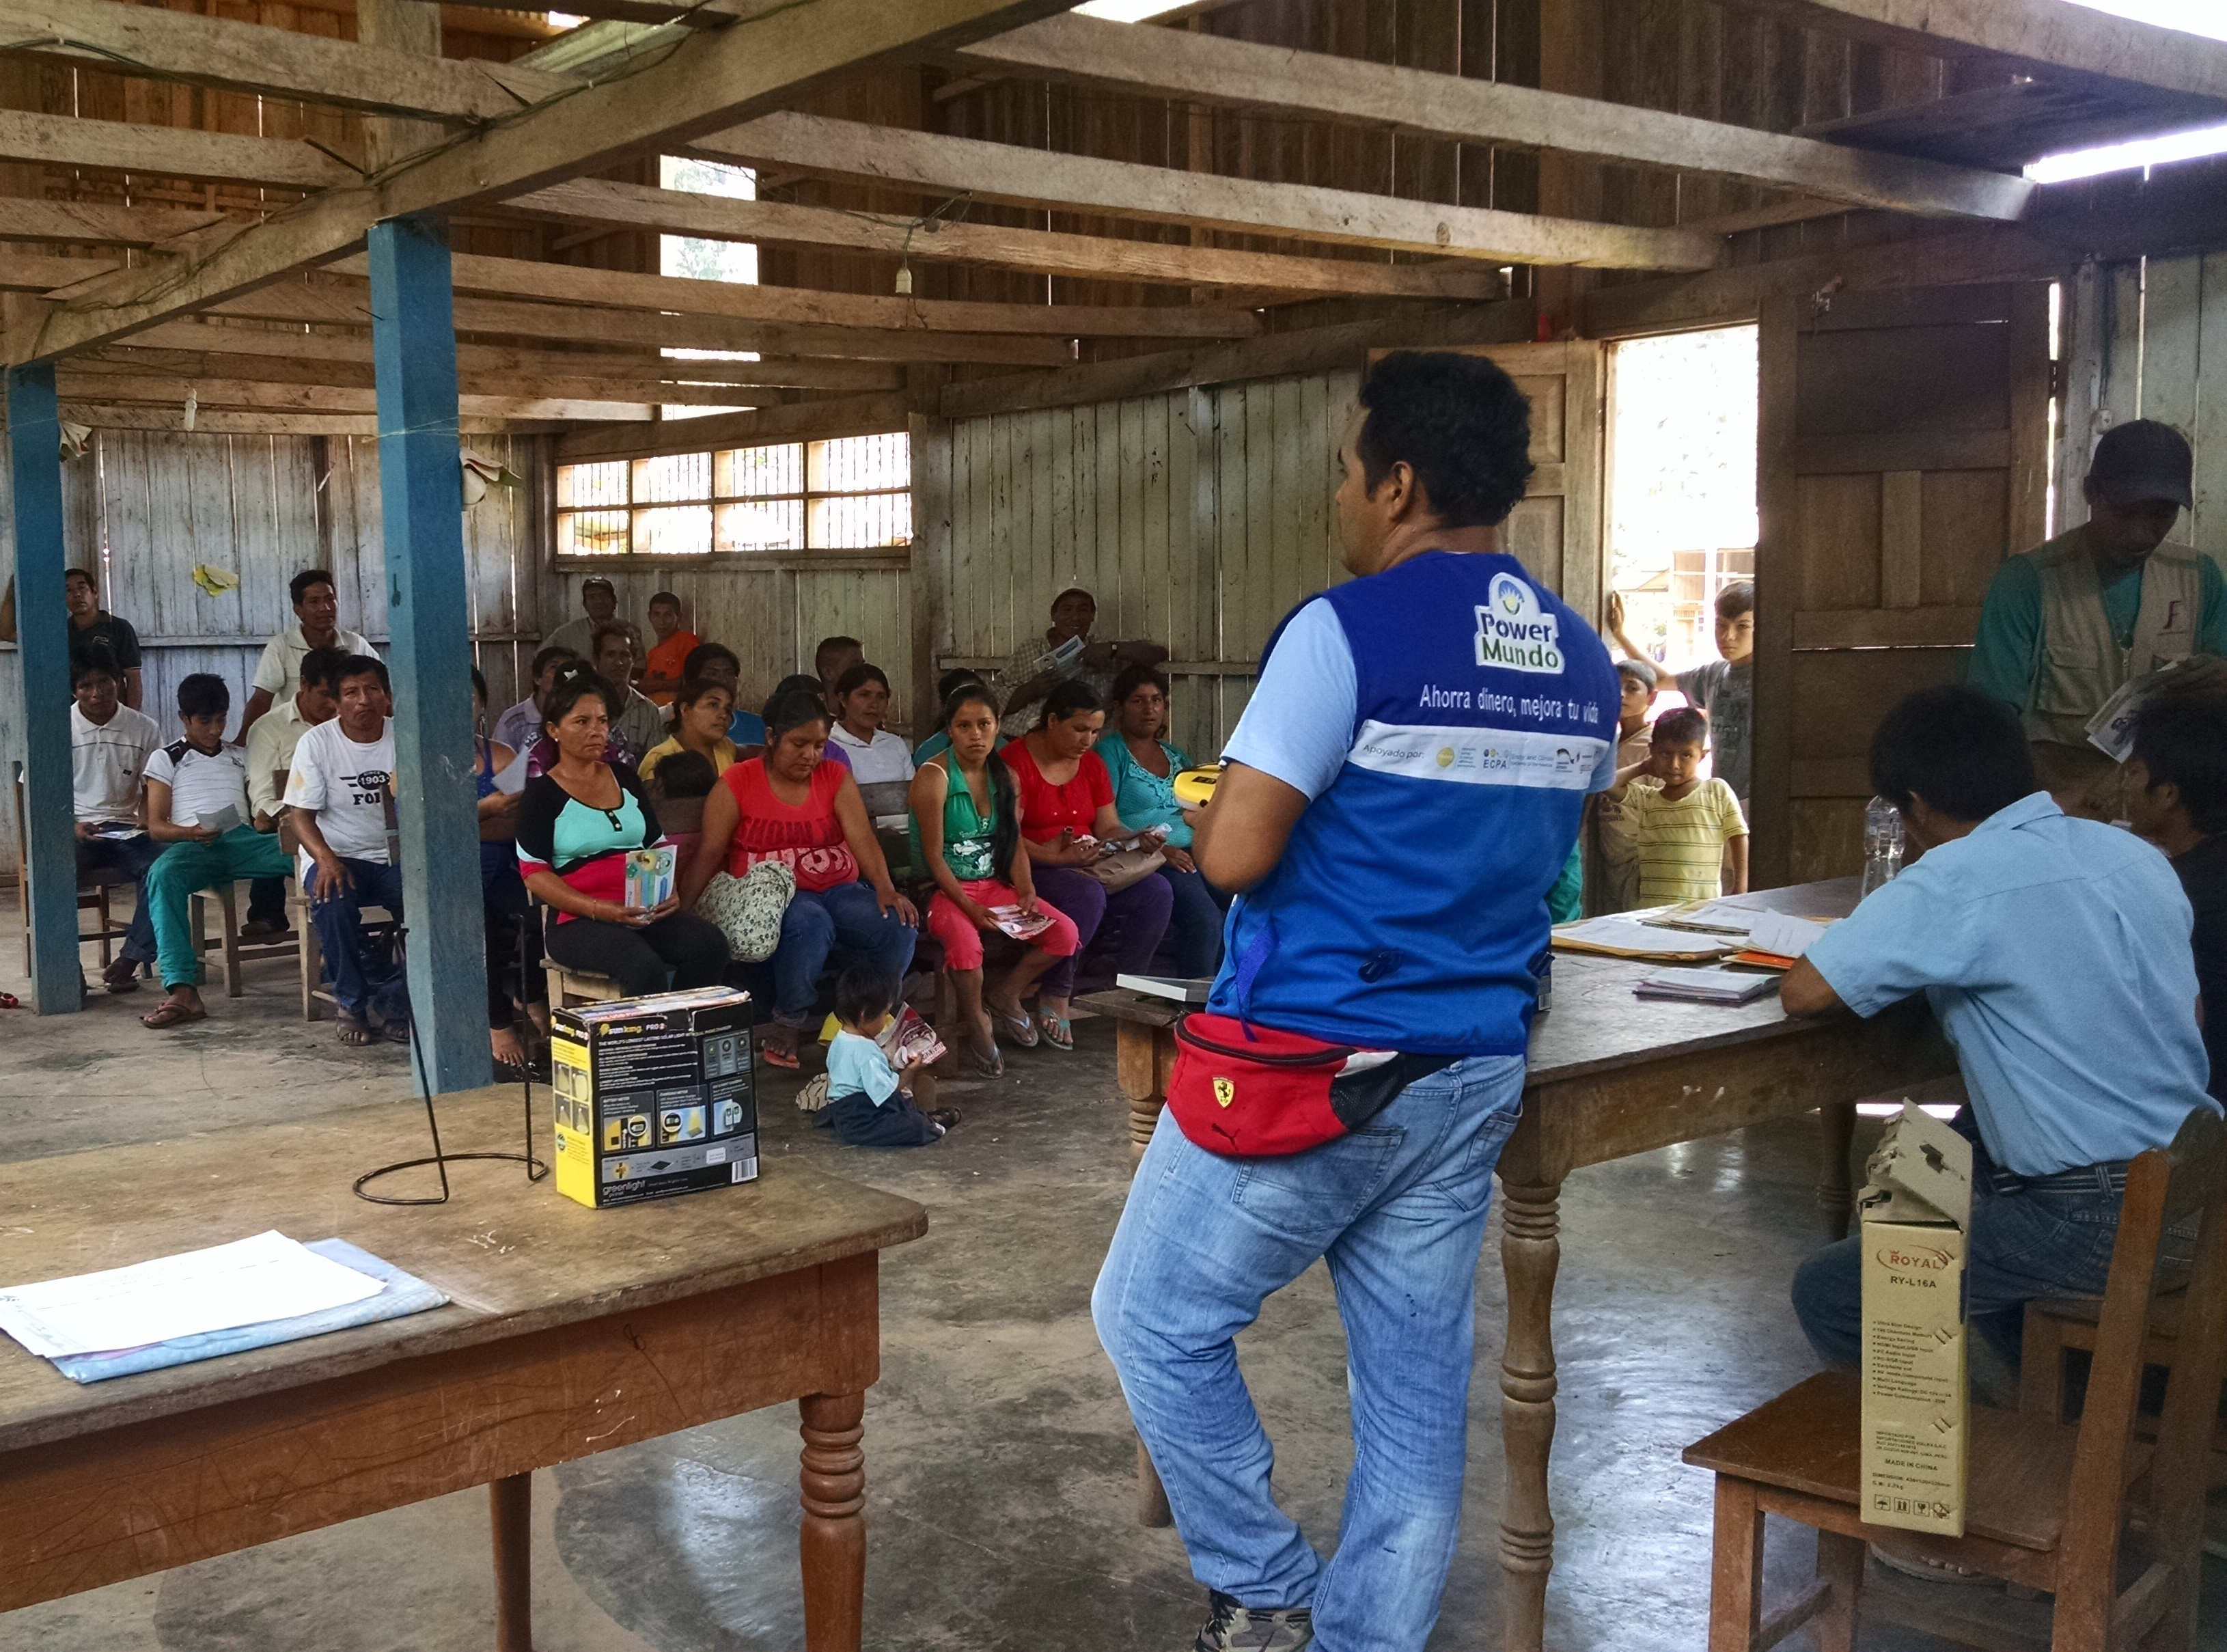 PowerMundo's Field Coordinator presenting the PAYG system at a community meeting in San Martín